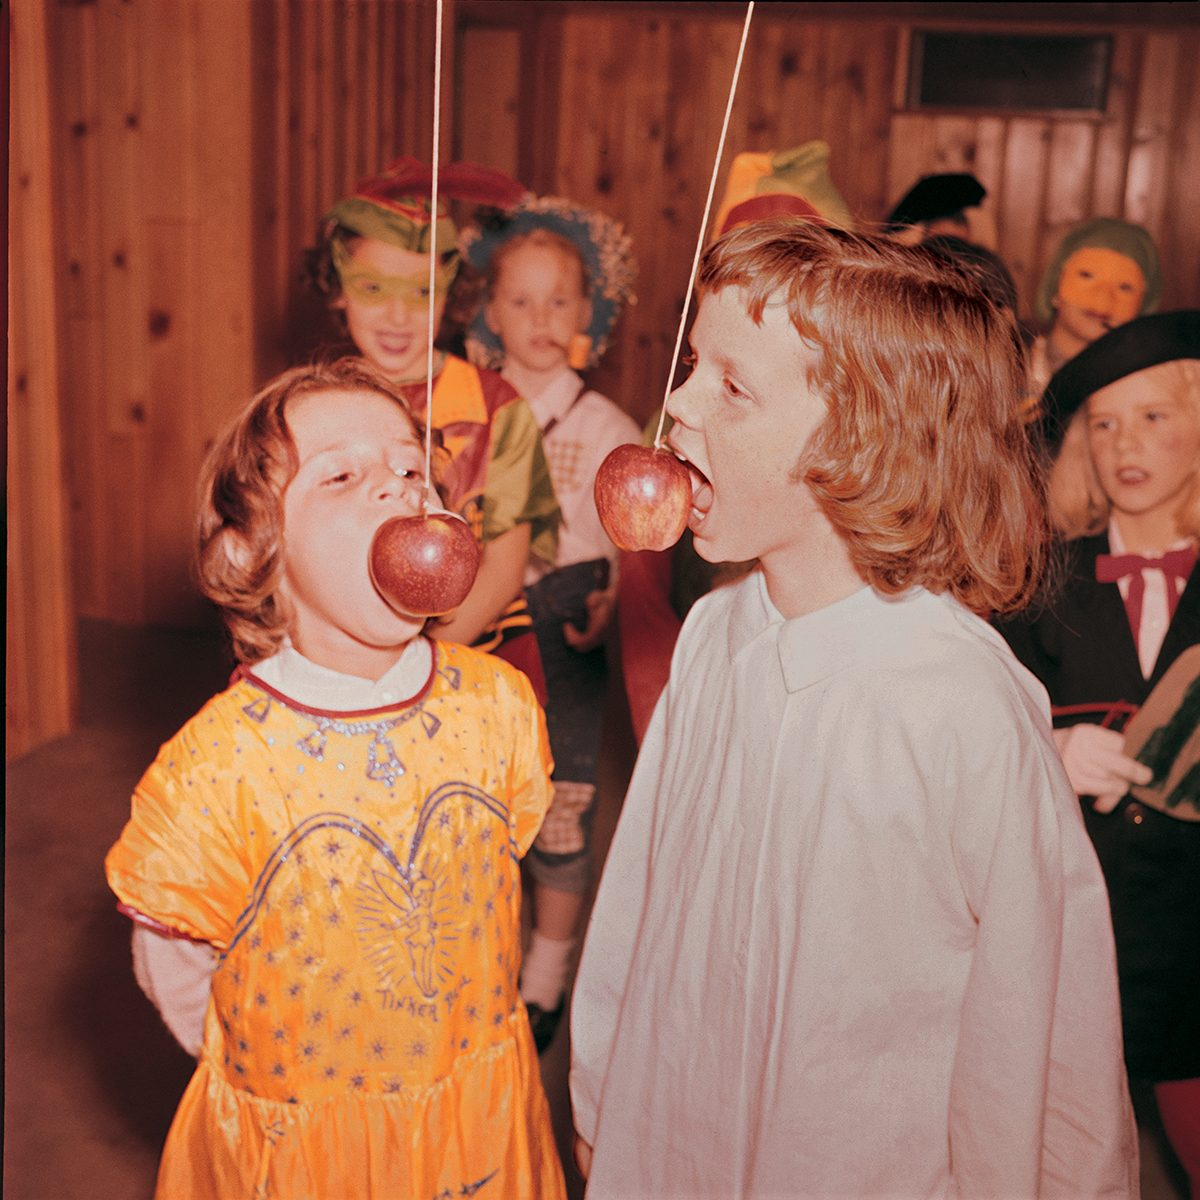 children at a Halloween party eating apples